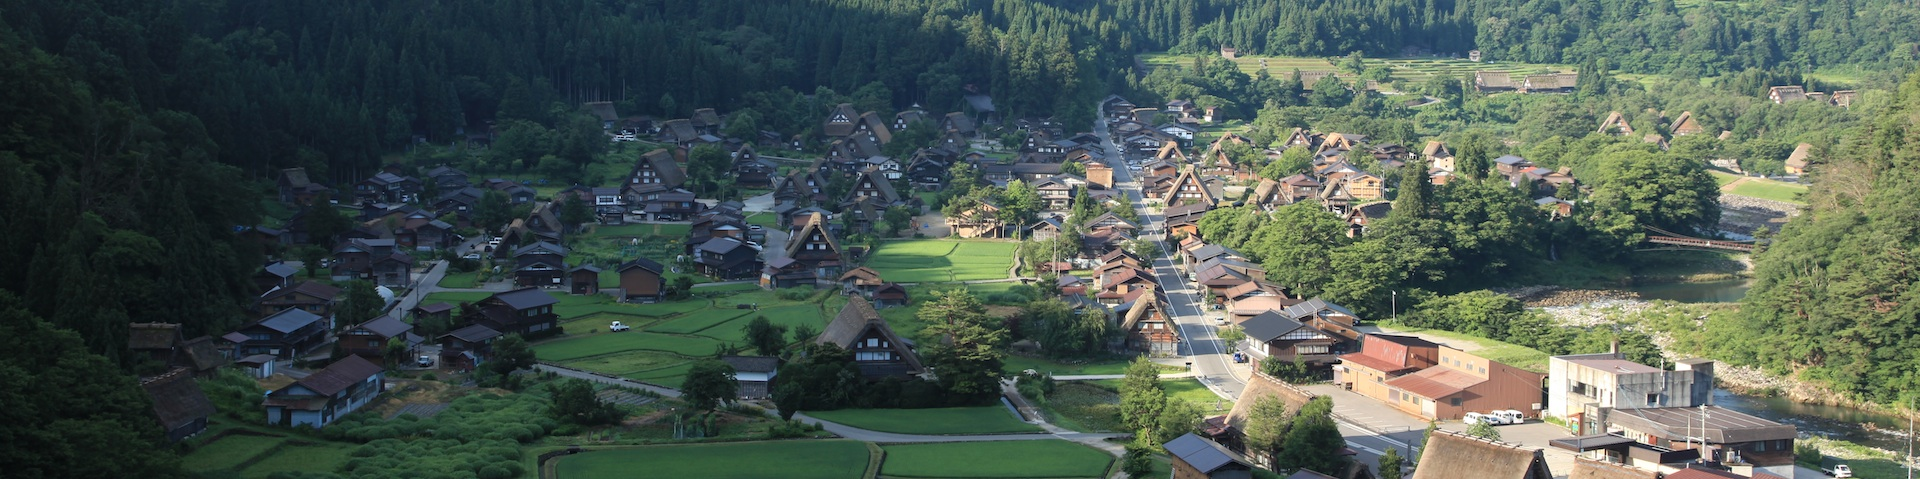 Shirakawago summer